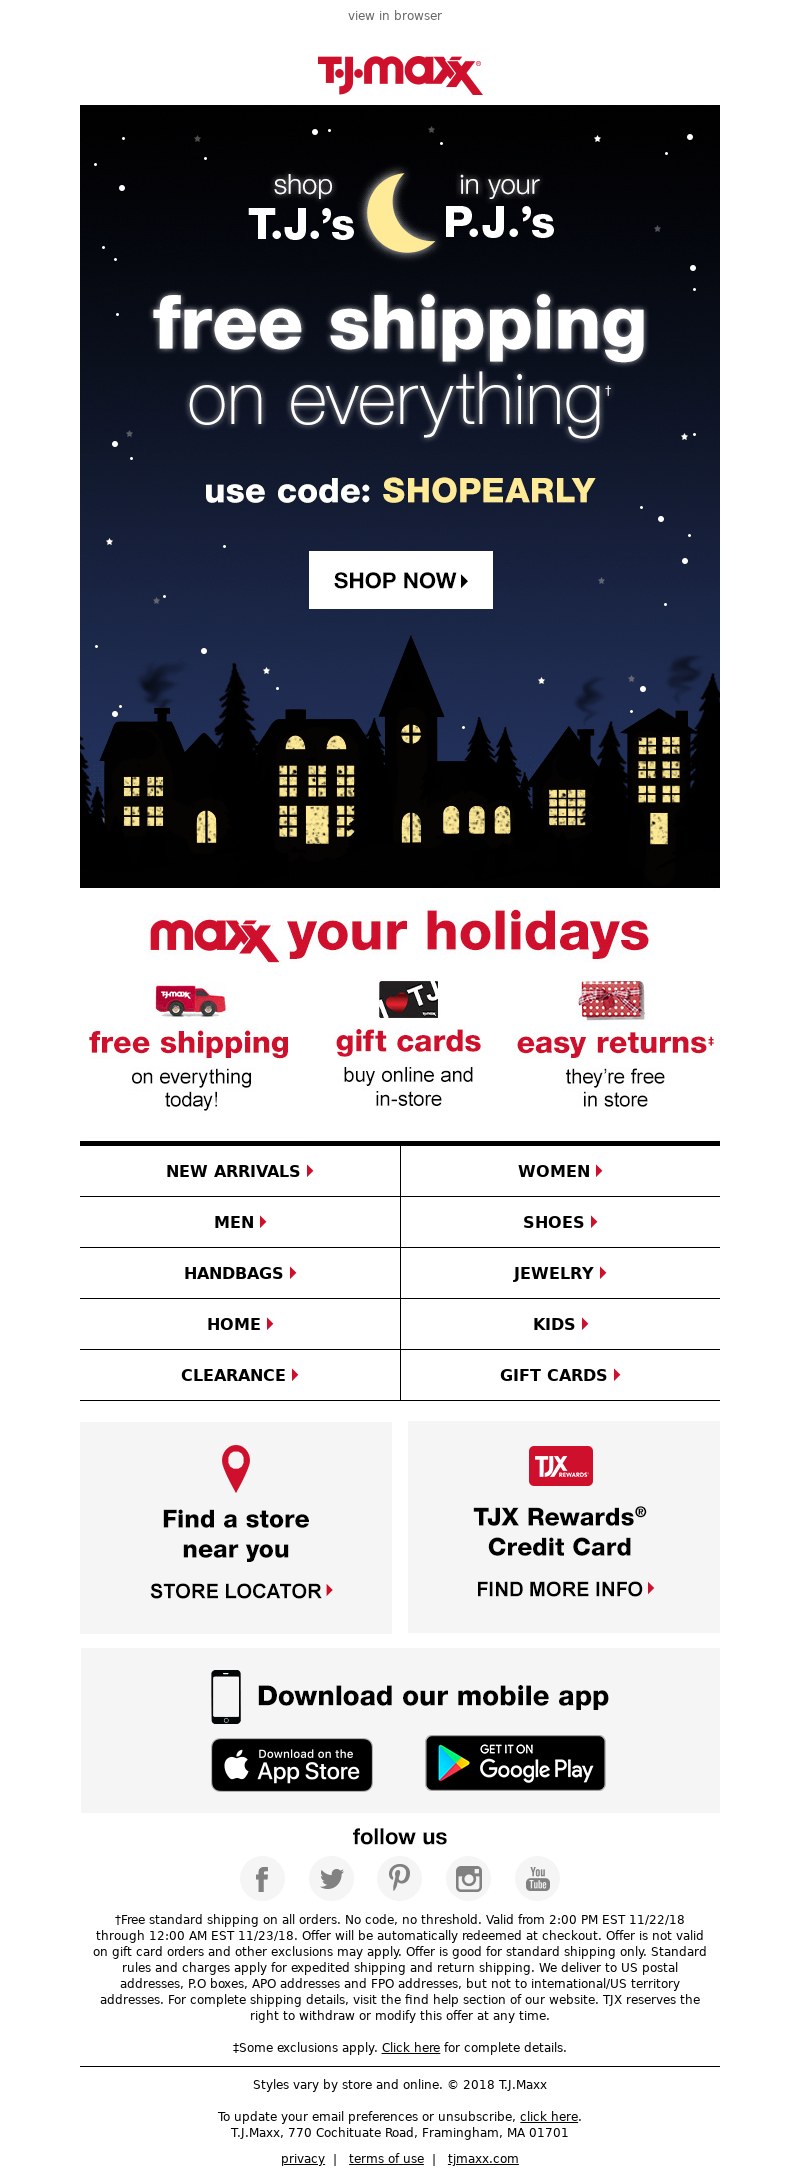 Promotional thanksgiving email example from T.J. Maxx